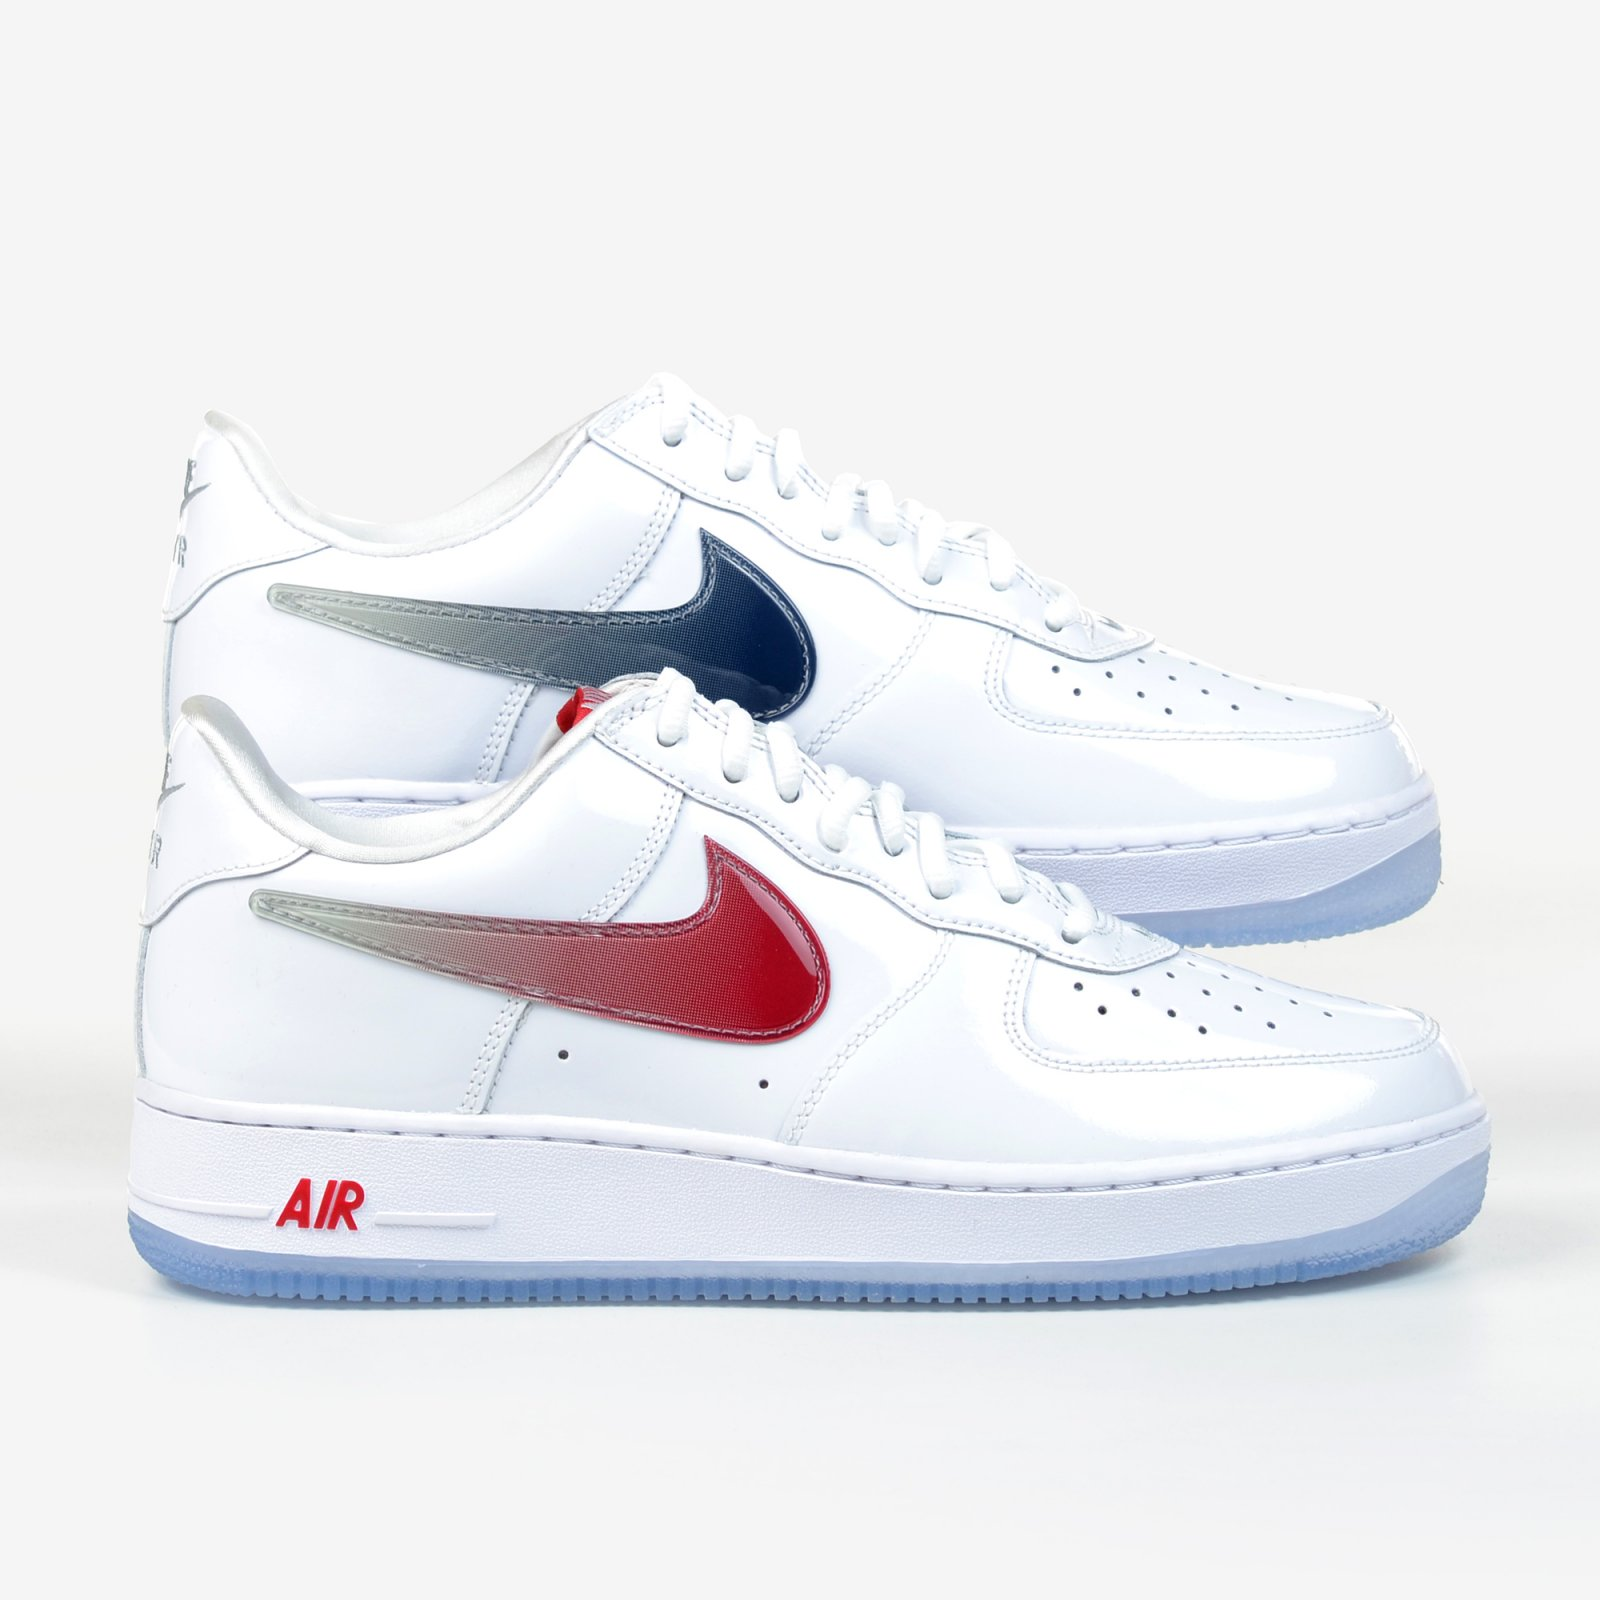 save off 771ac 75017 ... netherlands nike air force 1 low retro taiwan exclusive white patent  varsity red 845053 105 6c136